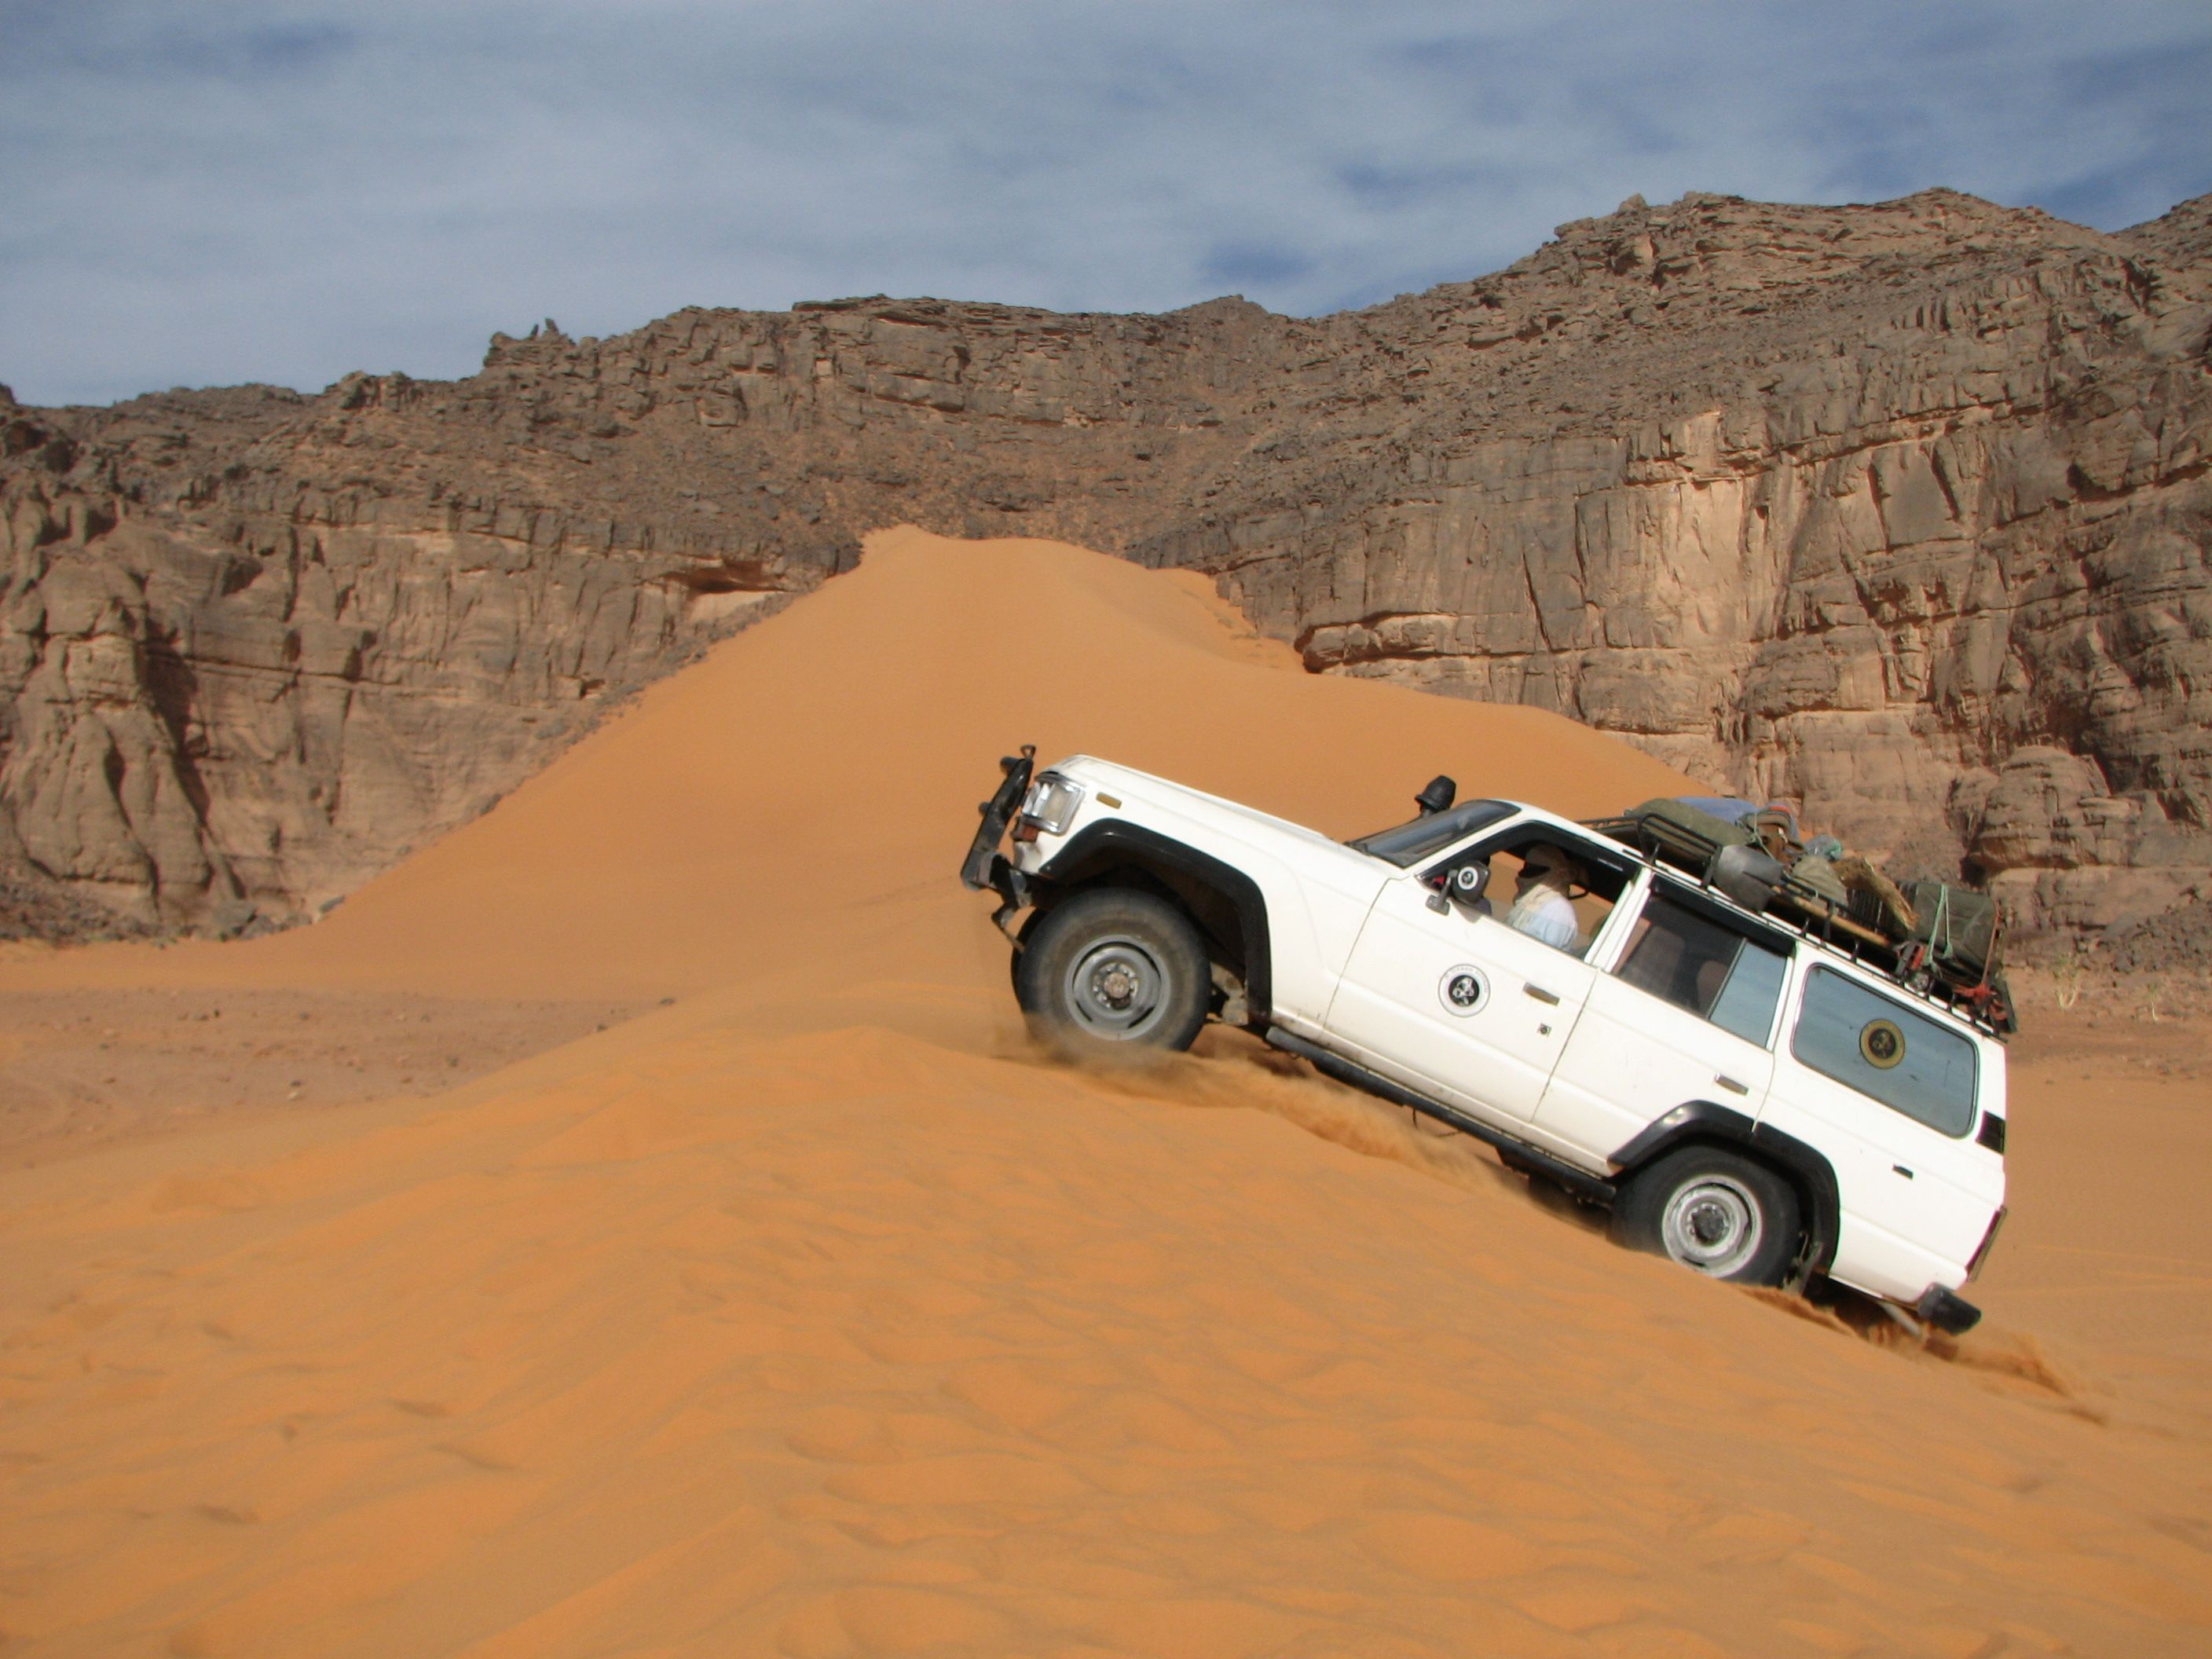 Djanet Algeria Here Starts The 4wd Exploration Of The Admer Tadrart Desert Where The Sahara Shows His Best Part